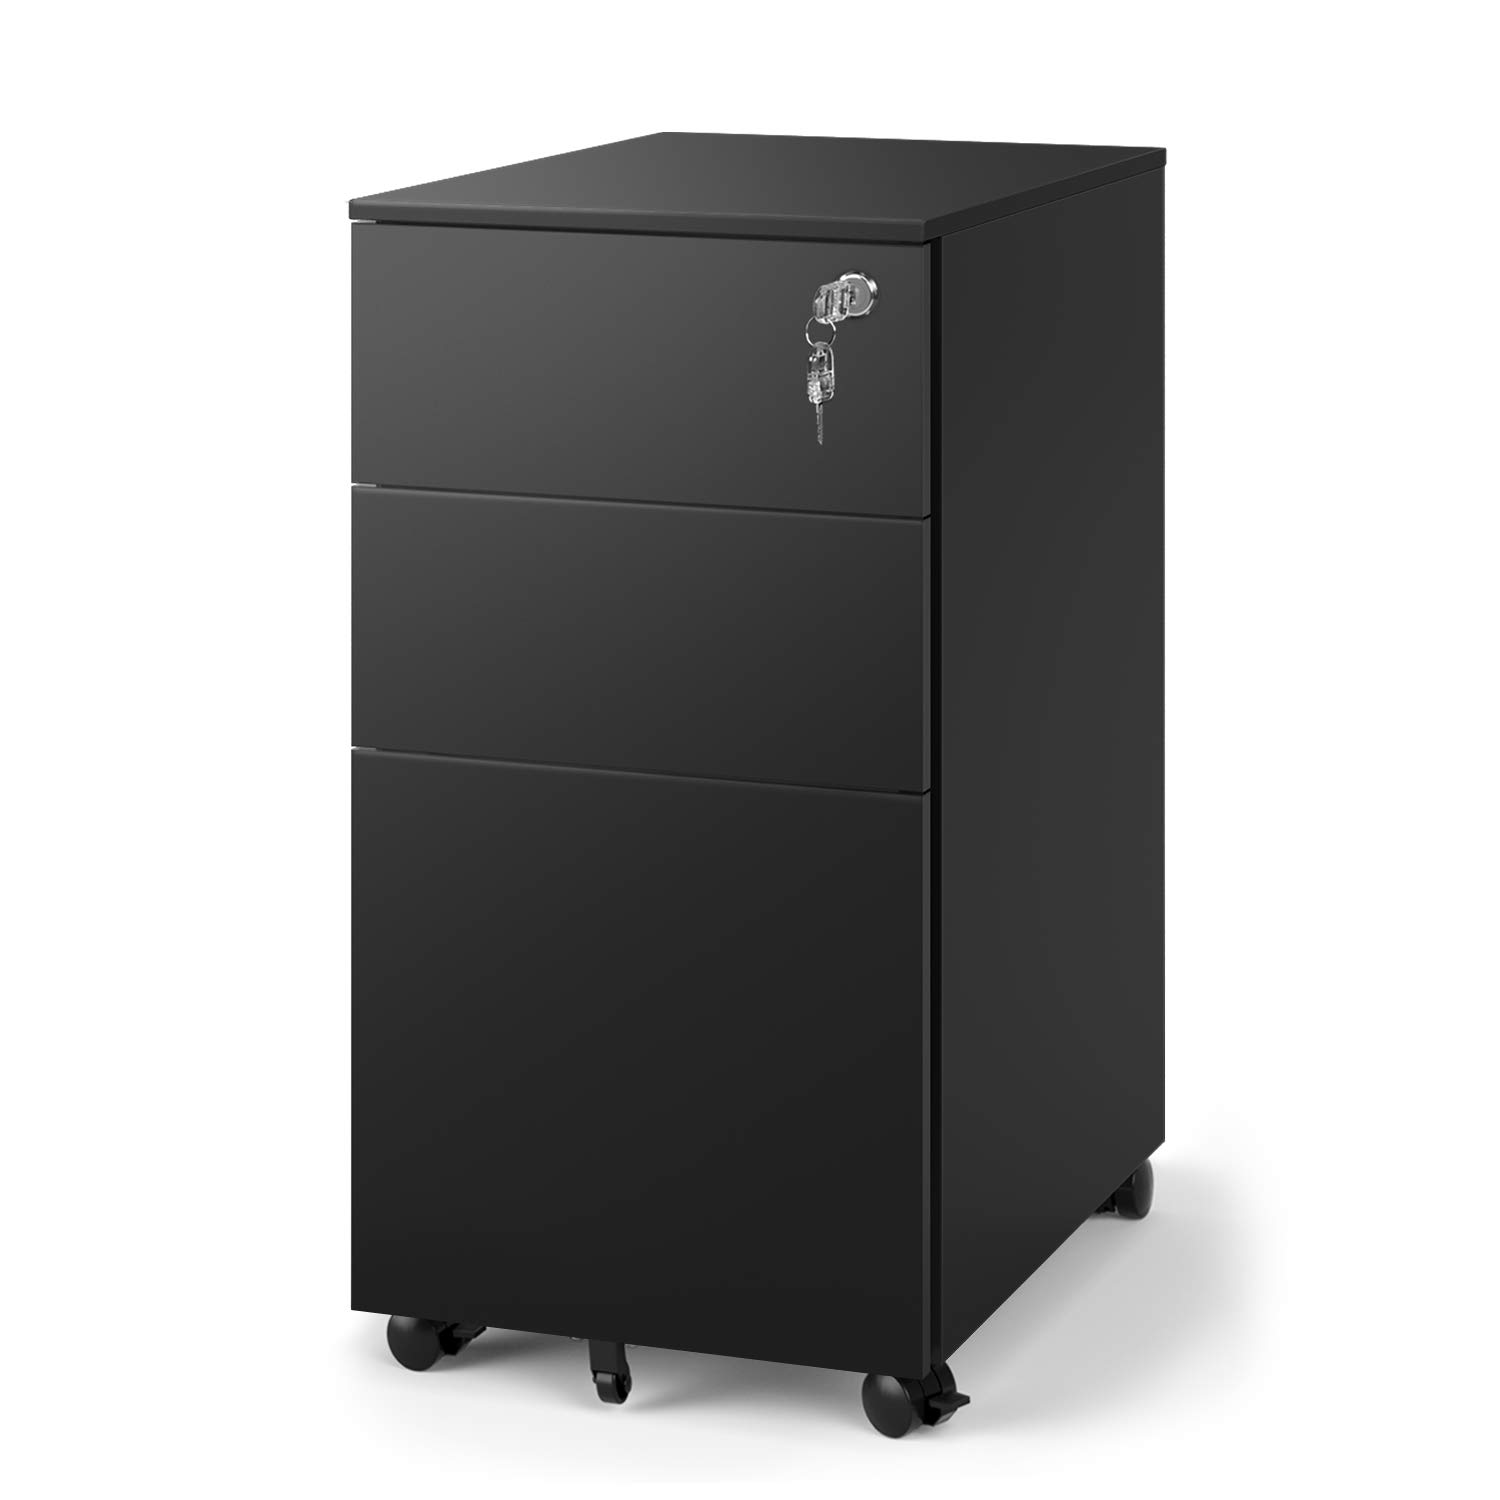 DEVAISE 3-Drawer Metal File Cabinet, Mobile Filing Cabinet for Home Office, Black